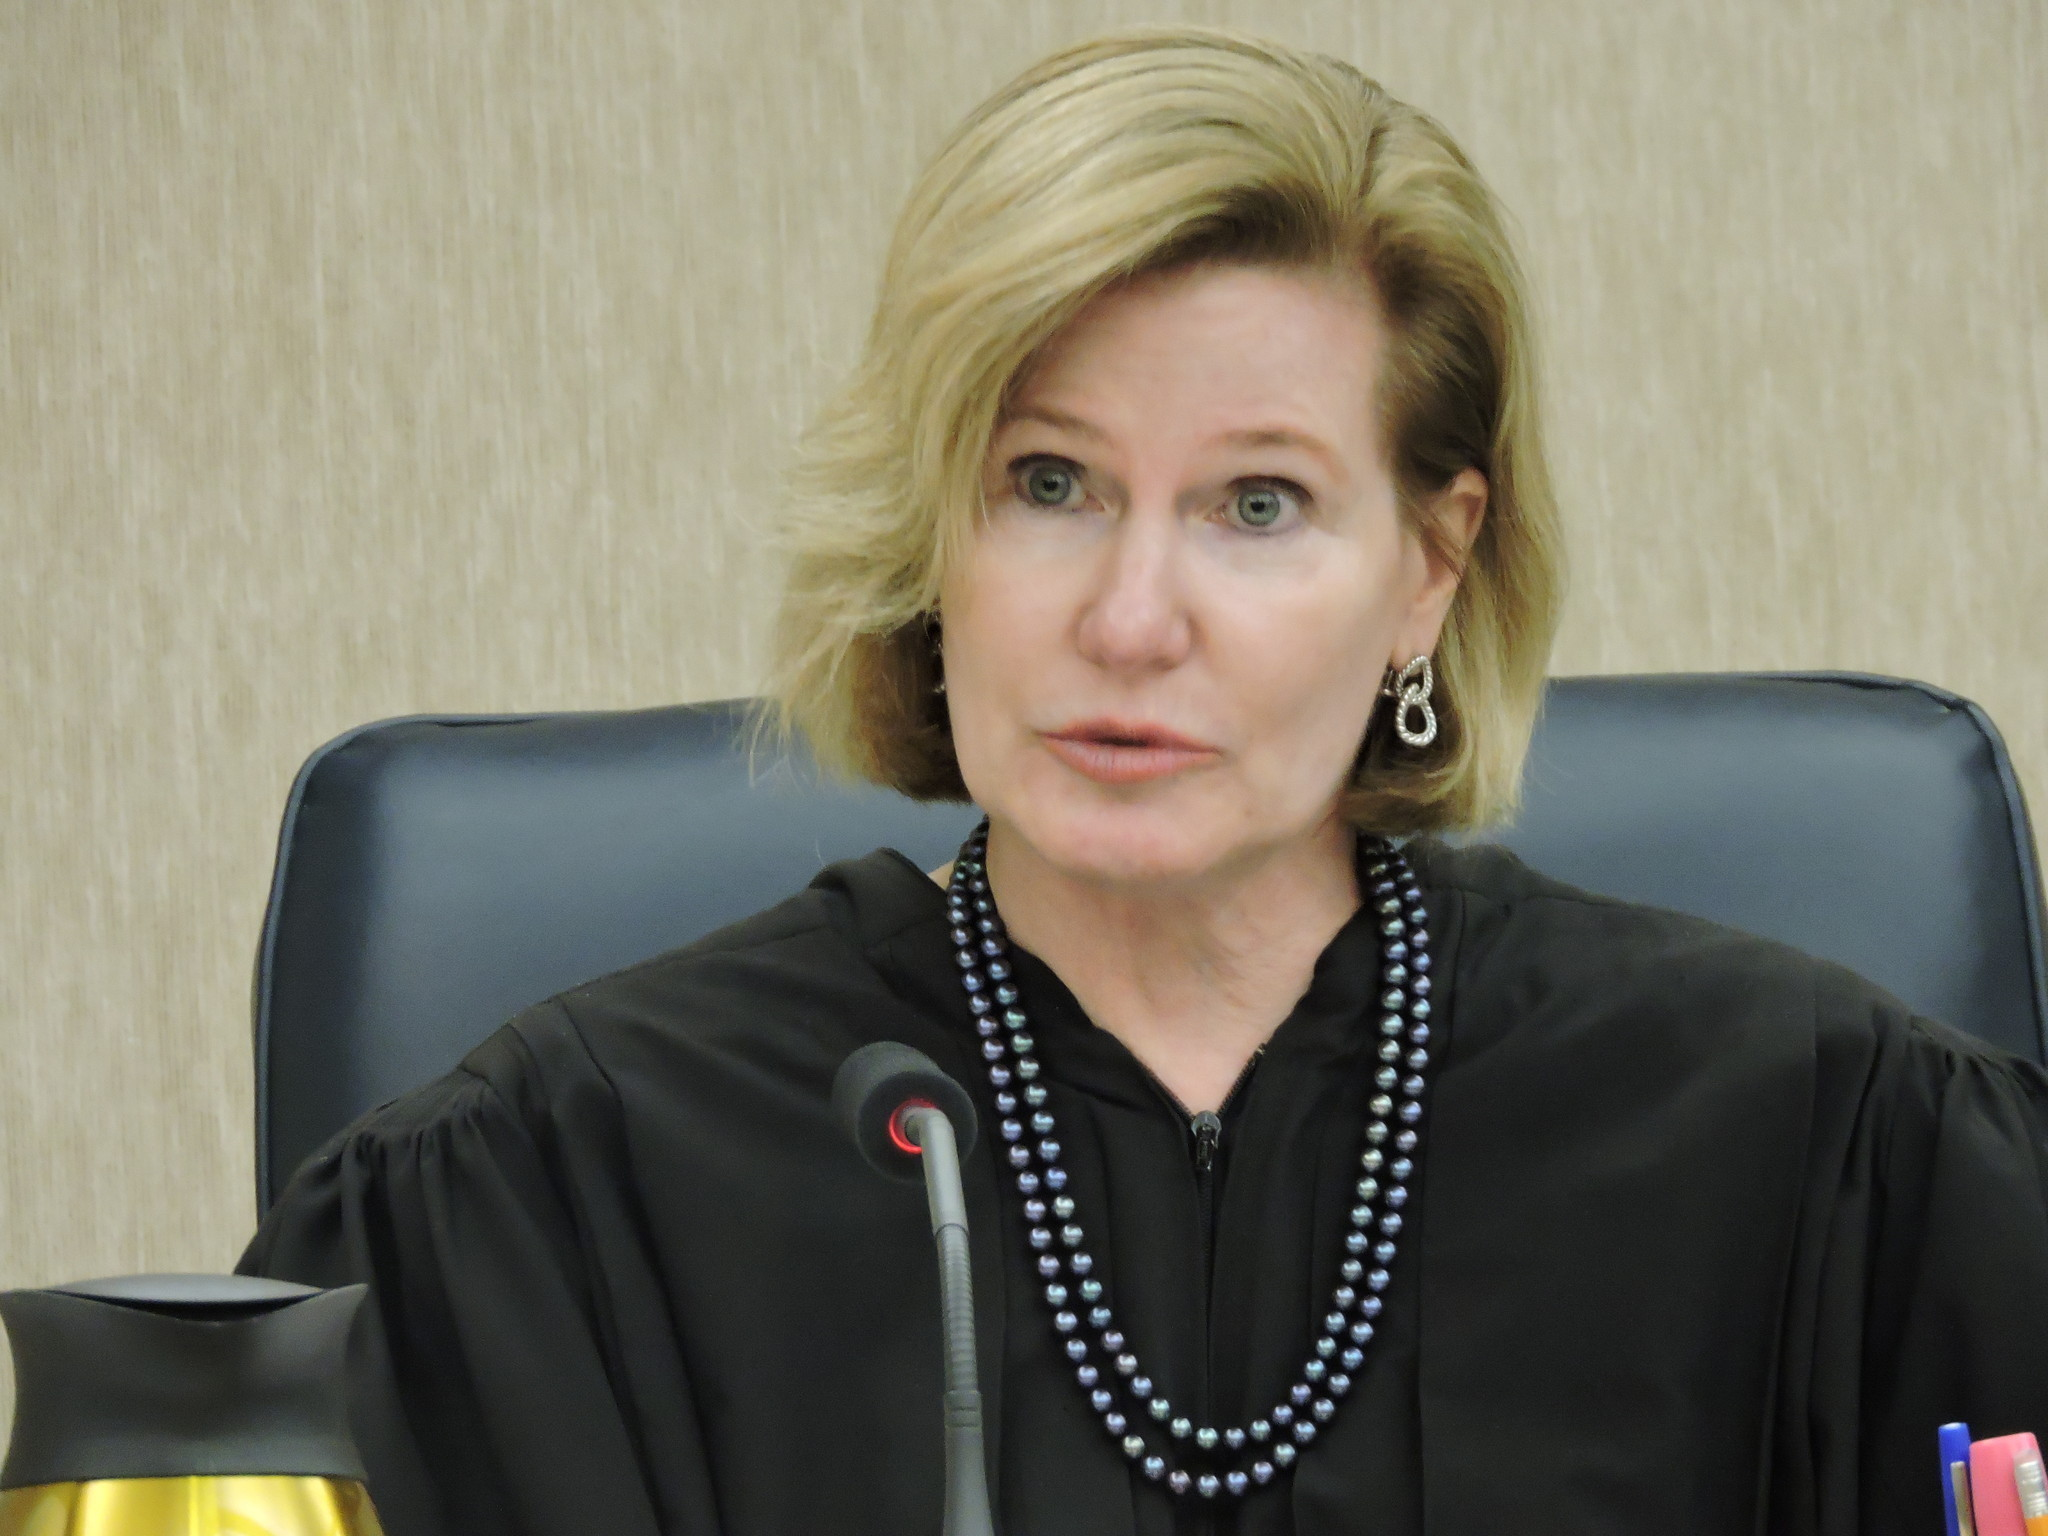 broward judge laura watson removed from bench